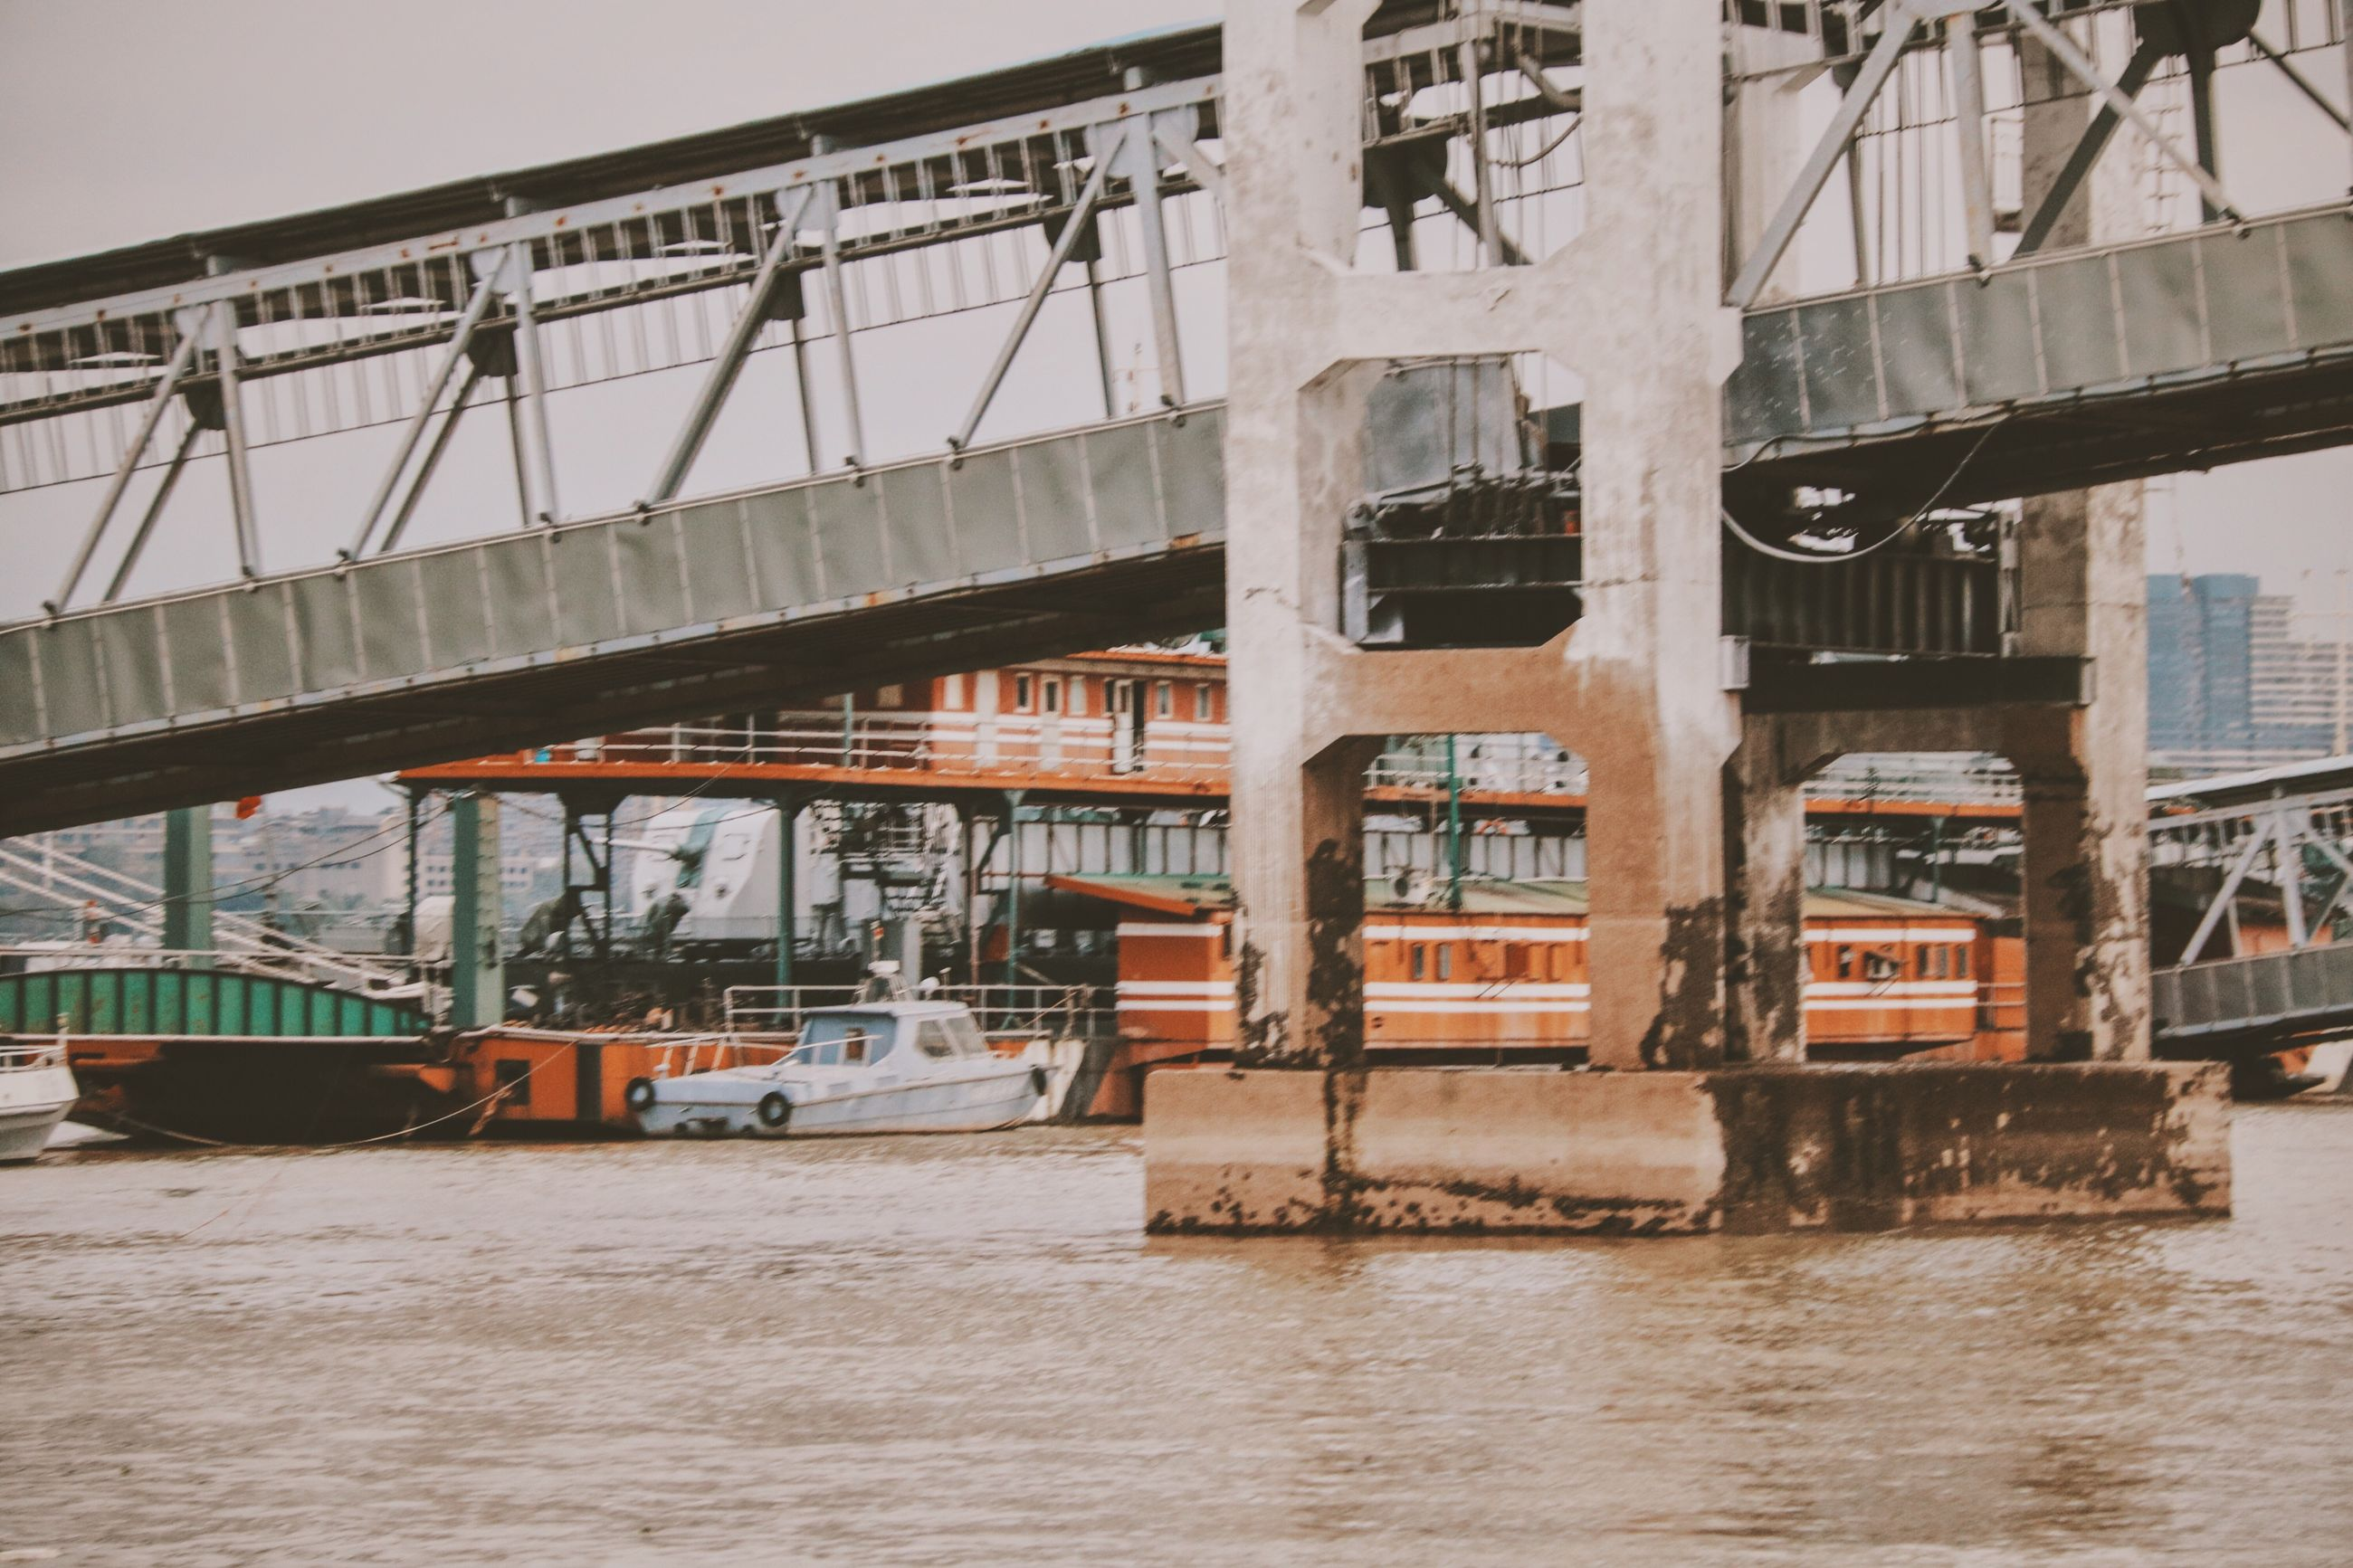 bridge - man made structure, transportation, water, river, business finance and industry, no people, nautical vessel, outdoors, day, sky